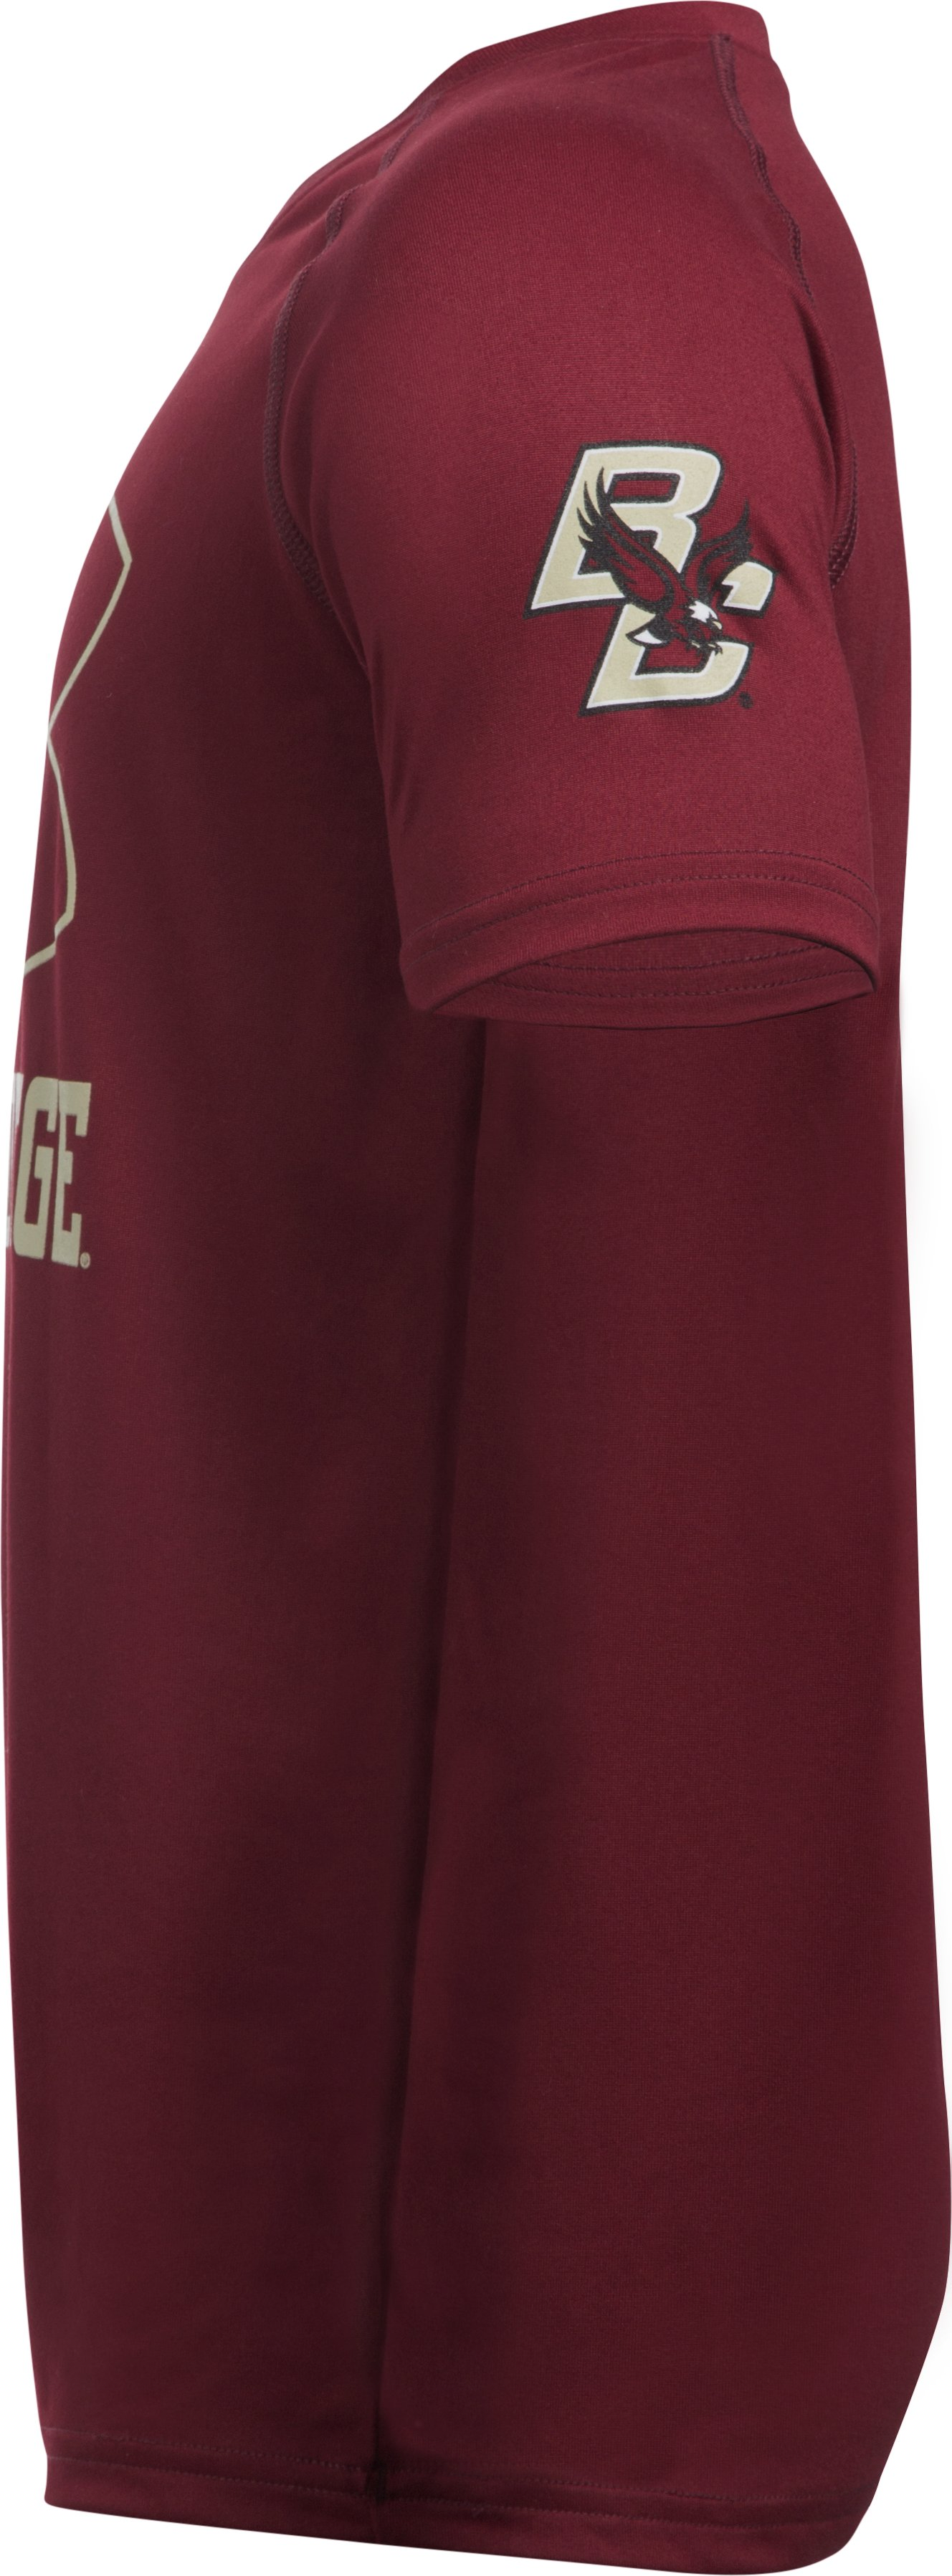 Boys' Boston College Charged Cotton® T-Shirt, Cardinal,